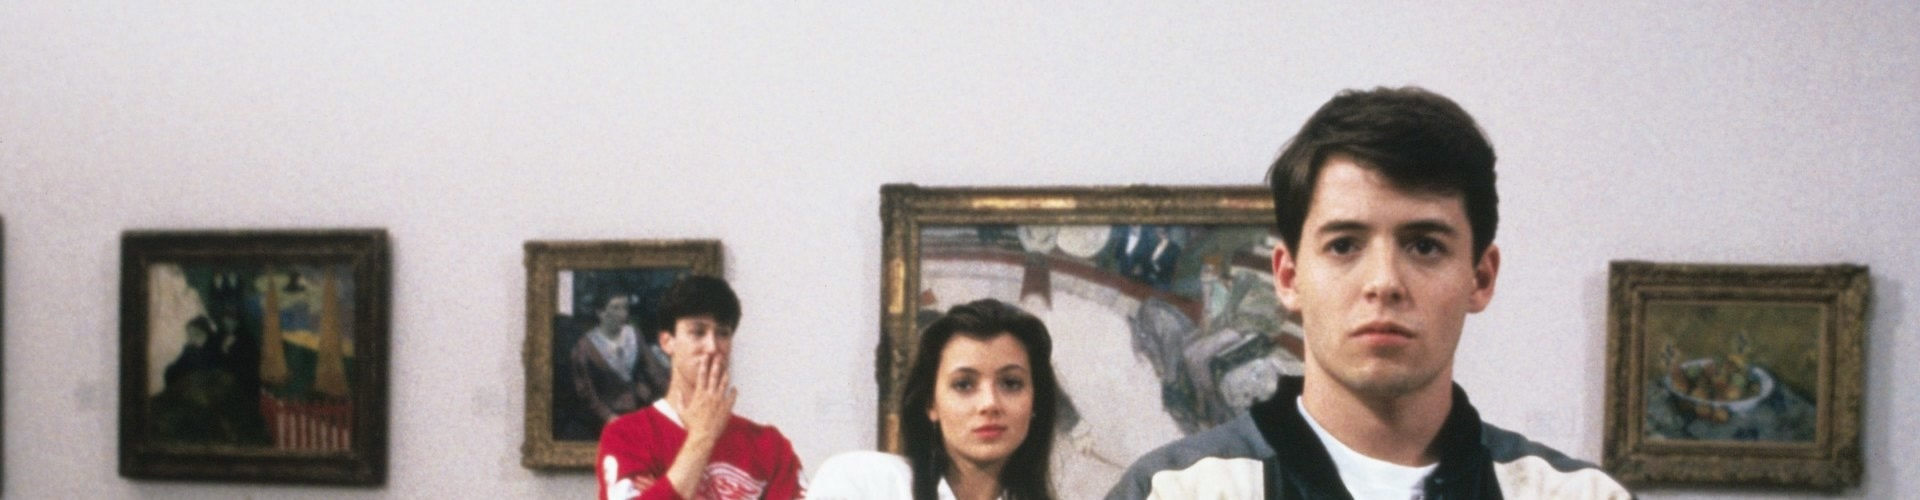 Watch Ferris Bueller's Day Off Online